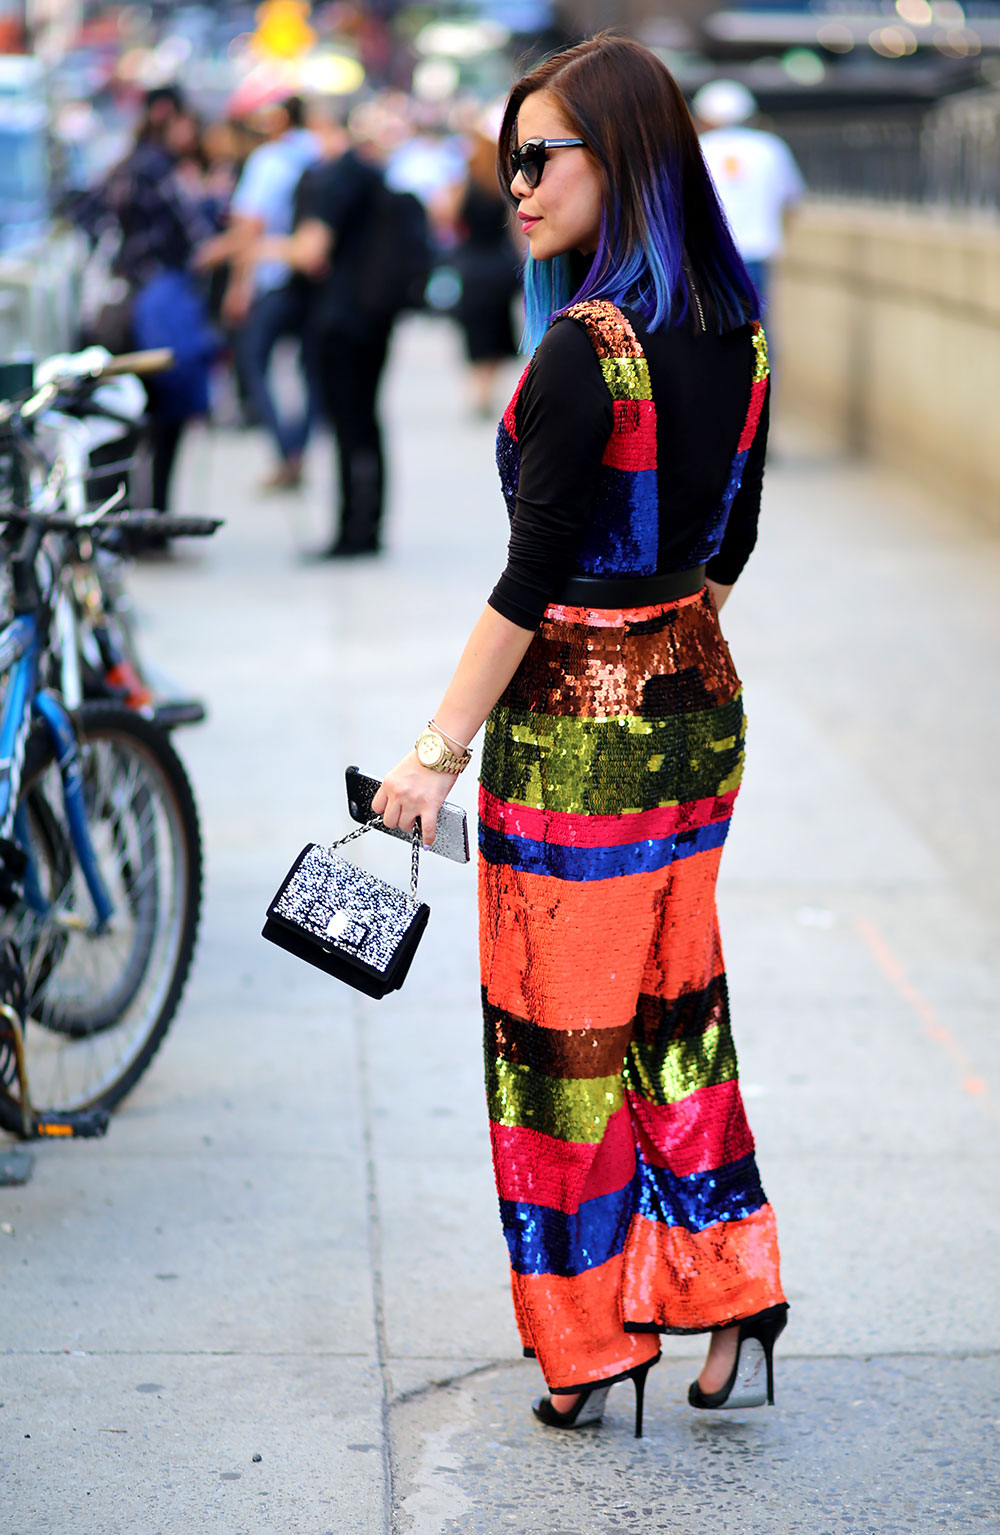 CrystalPhuong- New York Fashion Week 2017 Streetstyle- Rainbow Jumpsuit